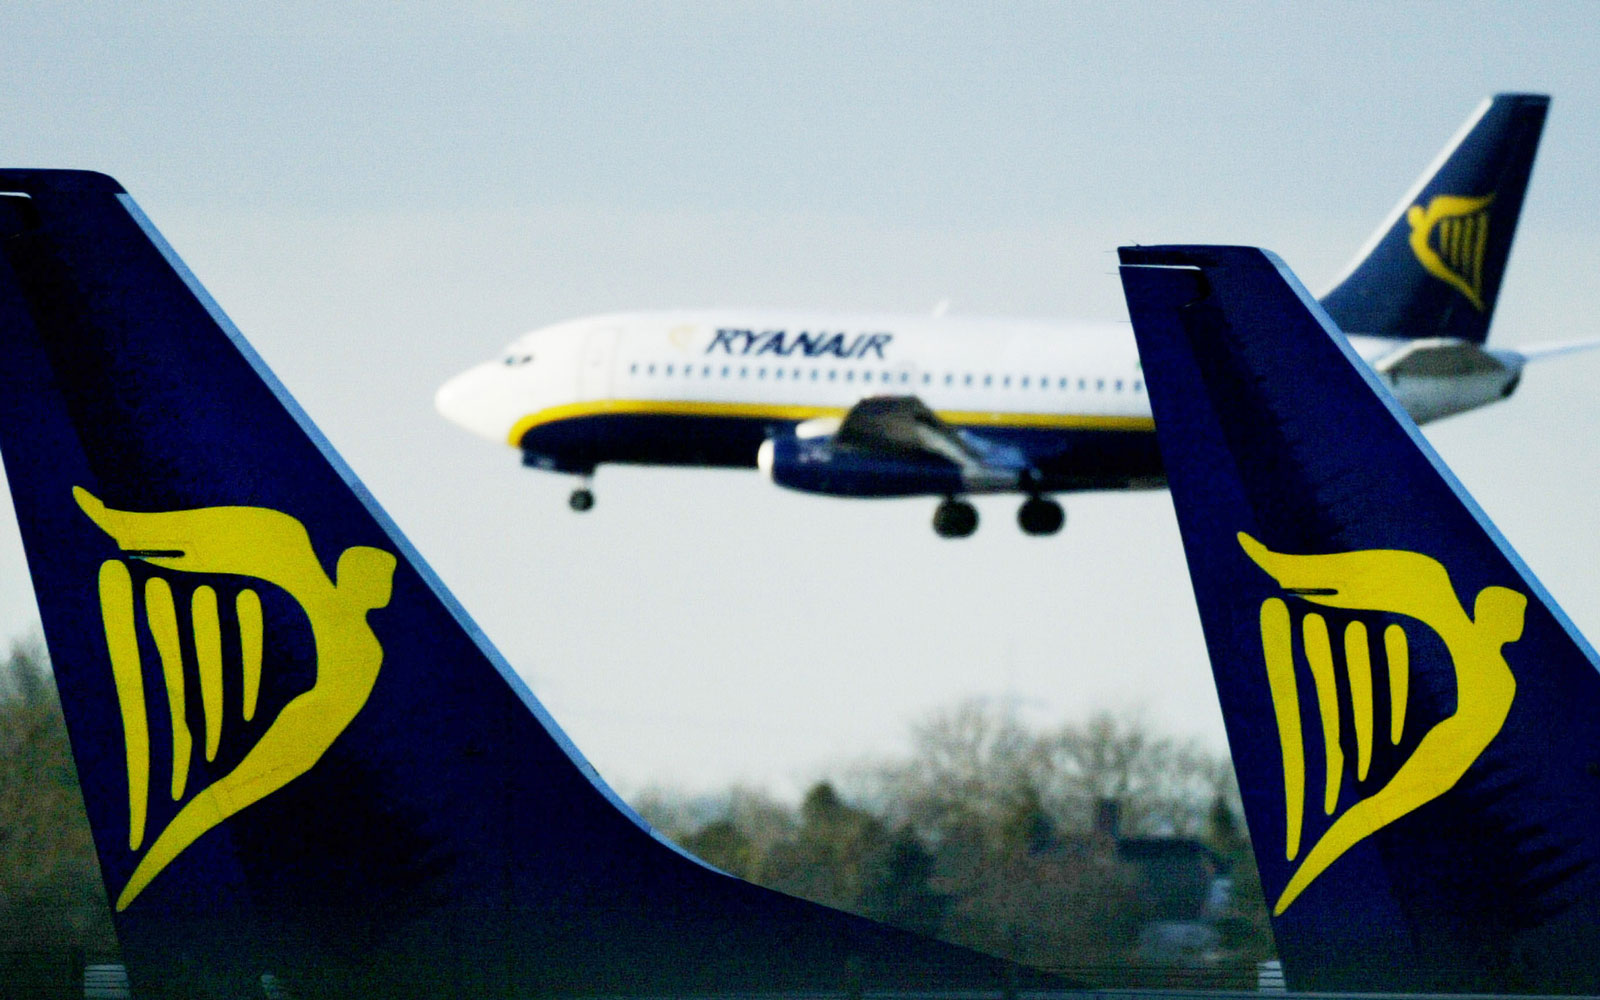 You can now fly direct to Europe with Ryanair